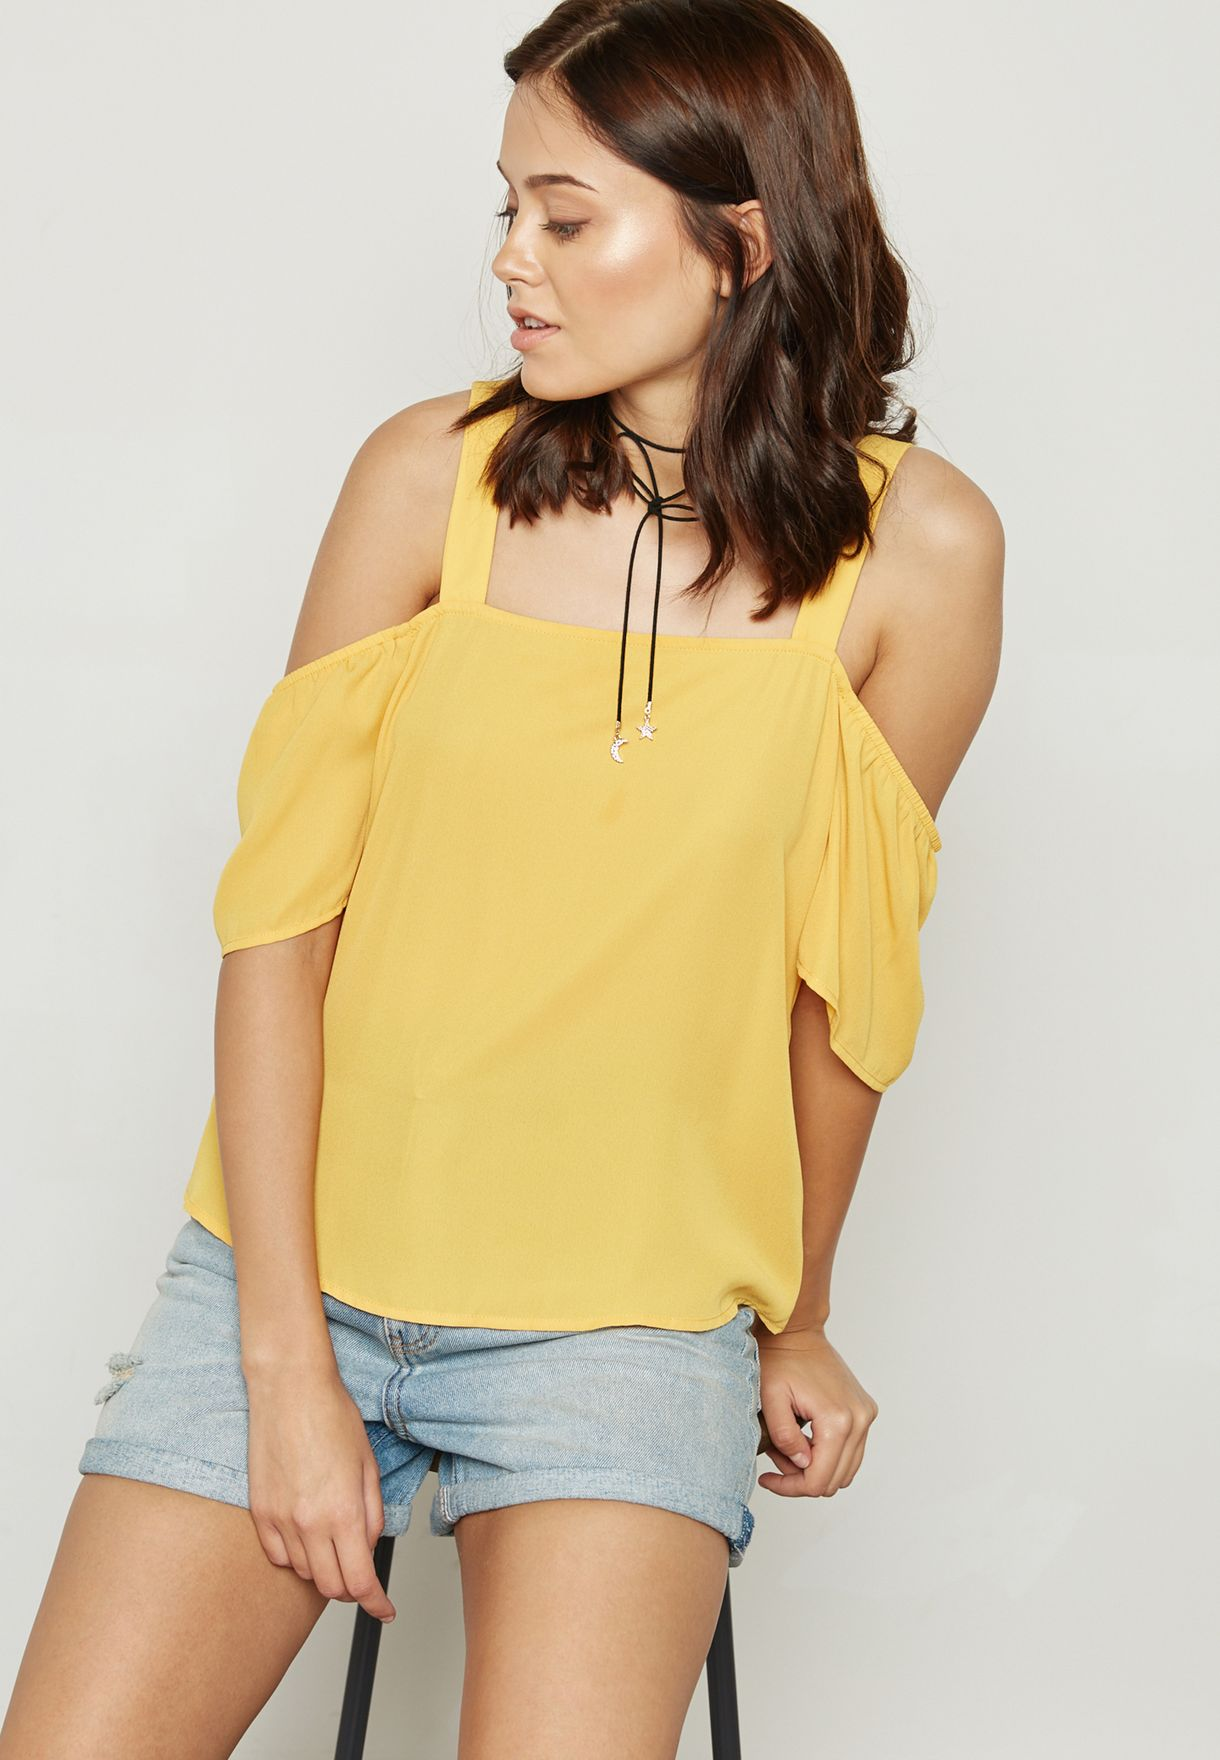 official shop best wholesaler on feet images of Cold Shoulder Top